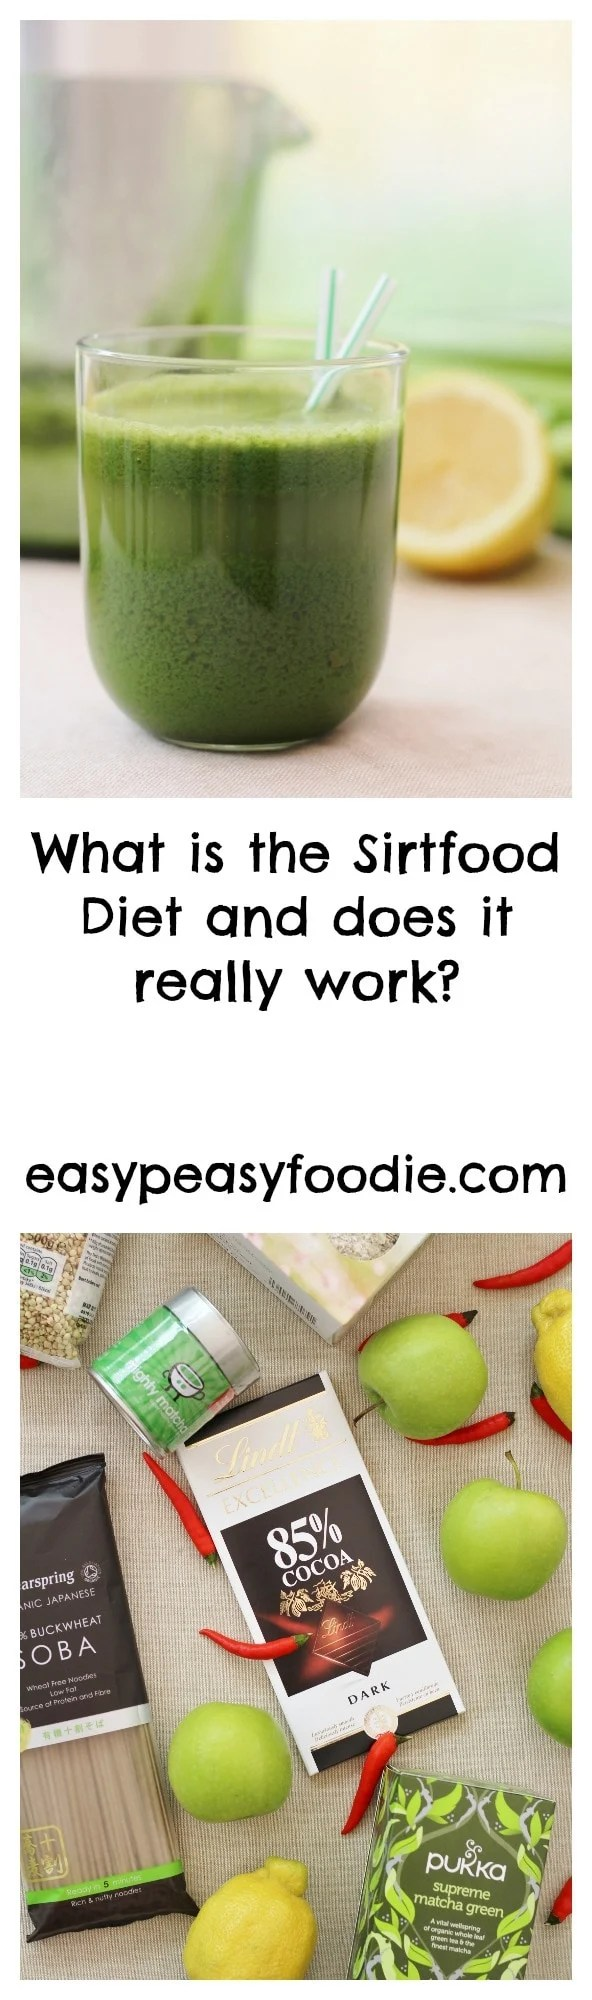 What is the sirtfood diet and does it really work part 1 easy what is the sirtfood diet and does it really work part 1 forumfinder Choice Image